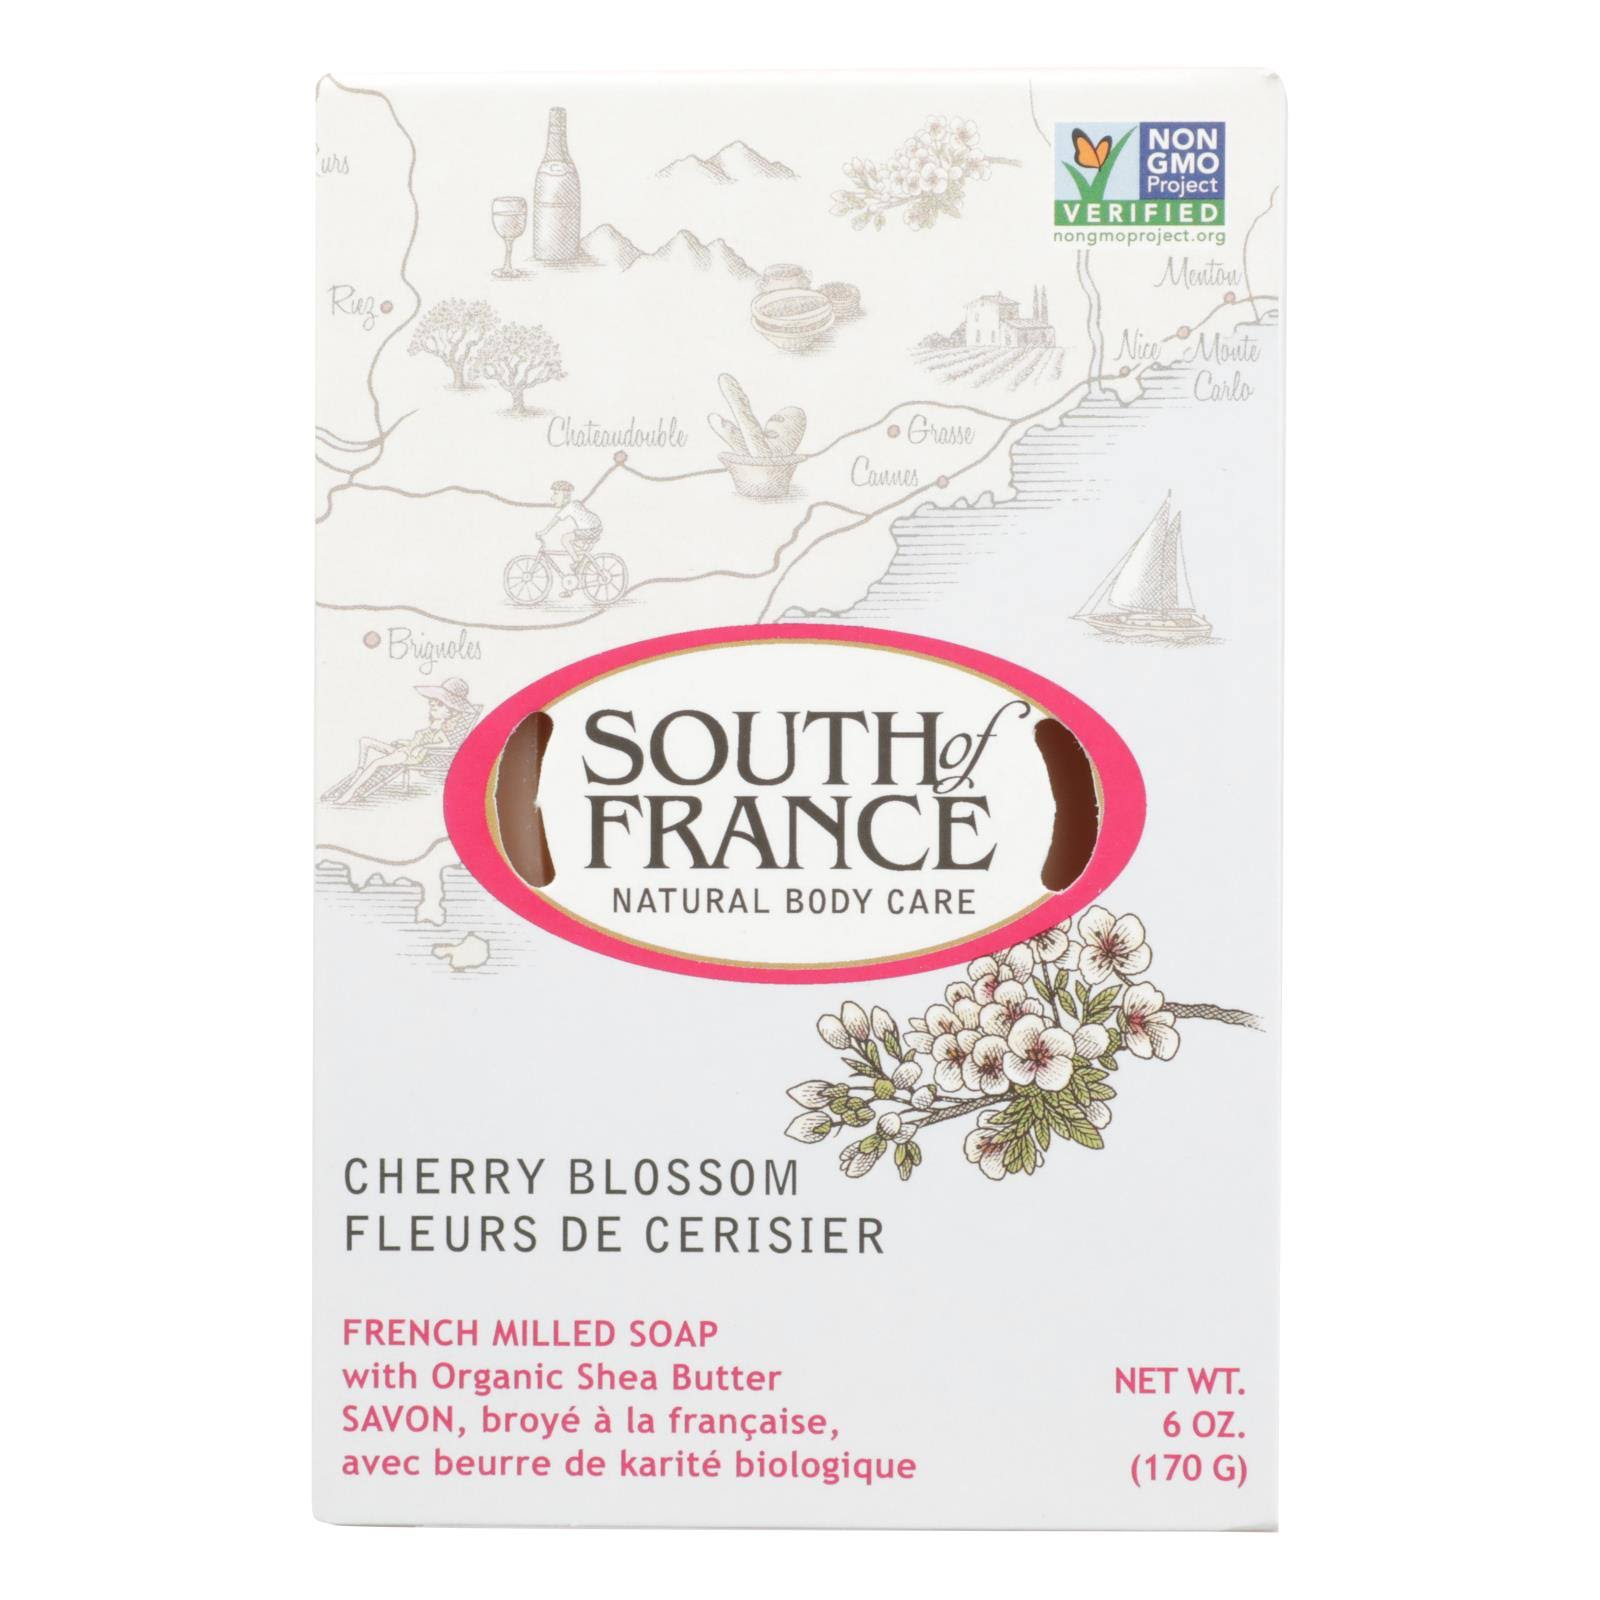 South of France Cherry Blossom Bar Soap 6 oz